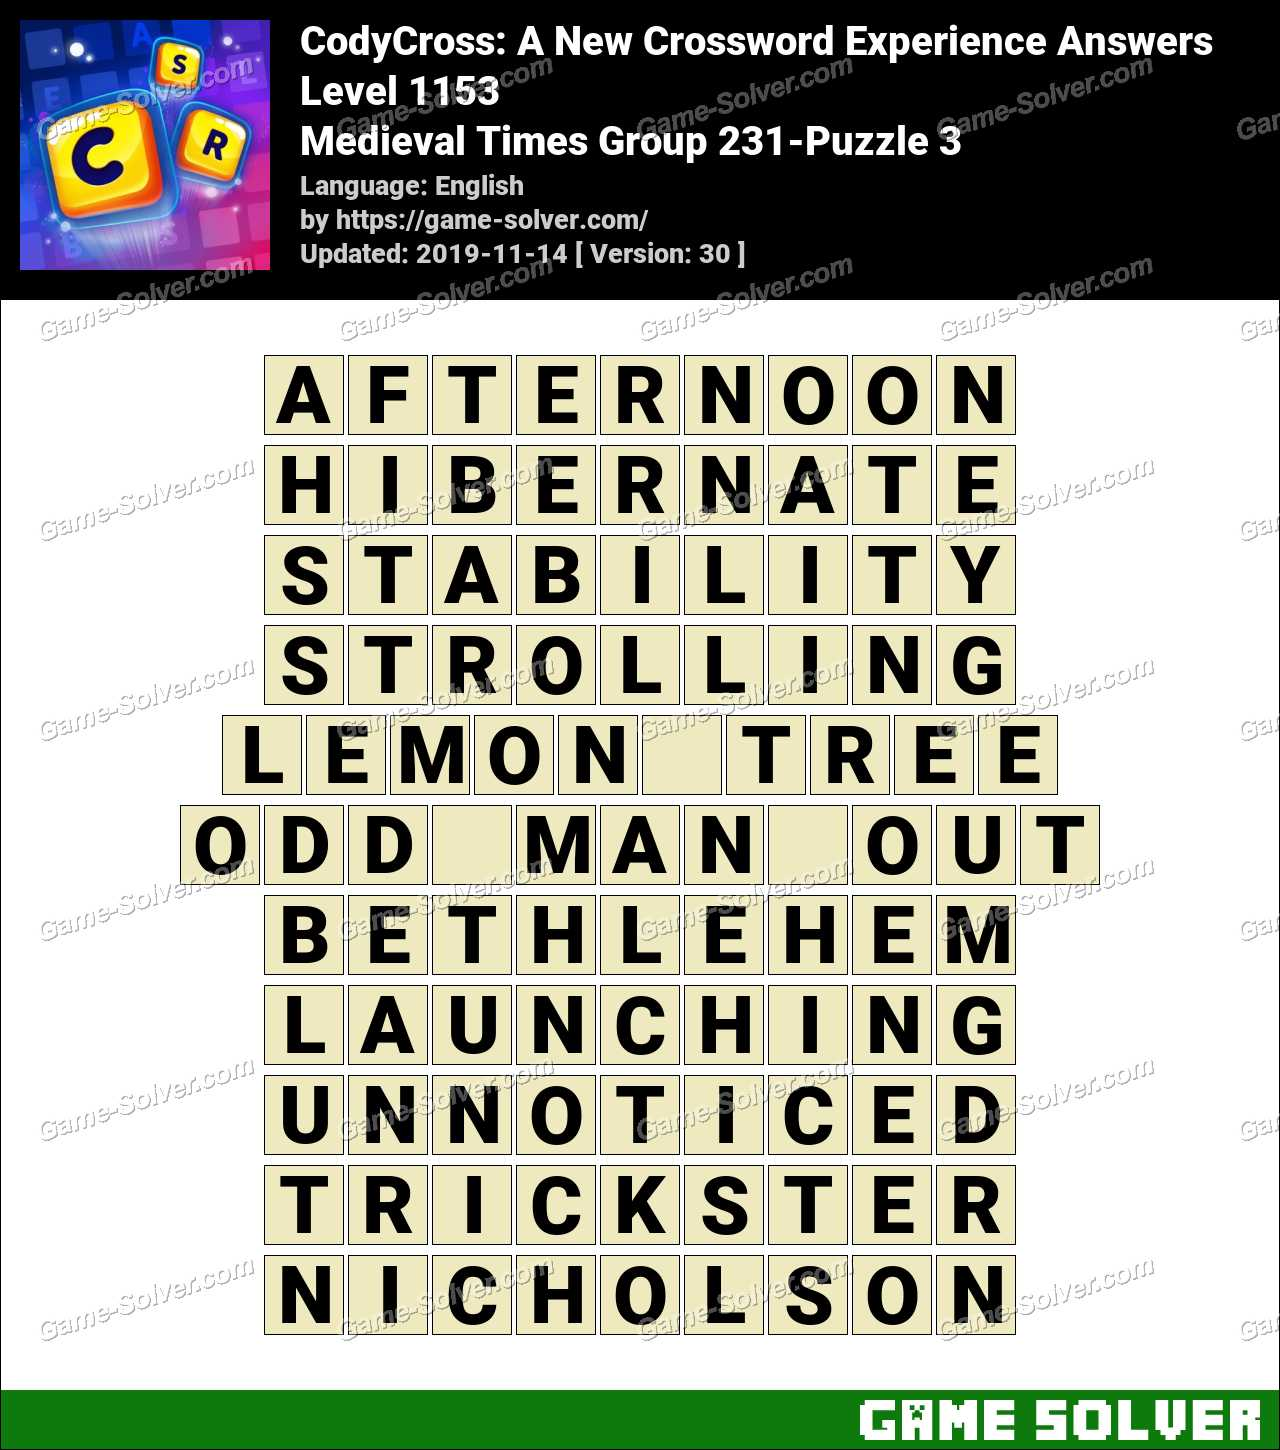 CodyCross Medieval Times Group 231-Puzzle 3 Answers